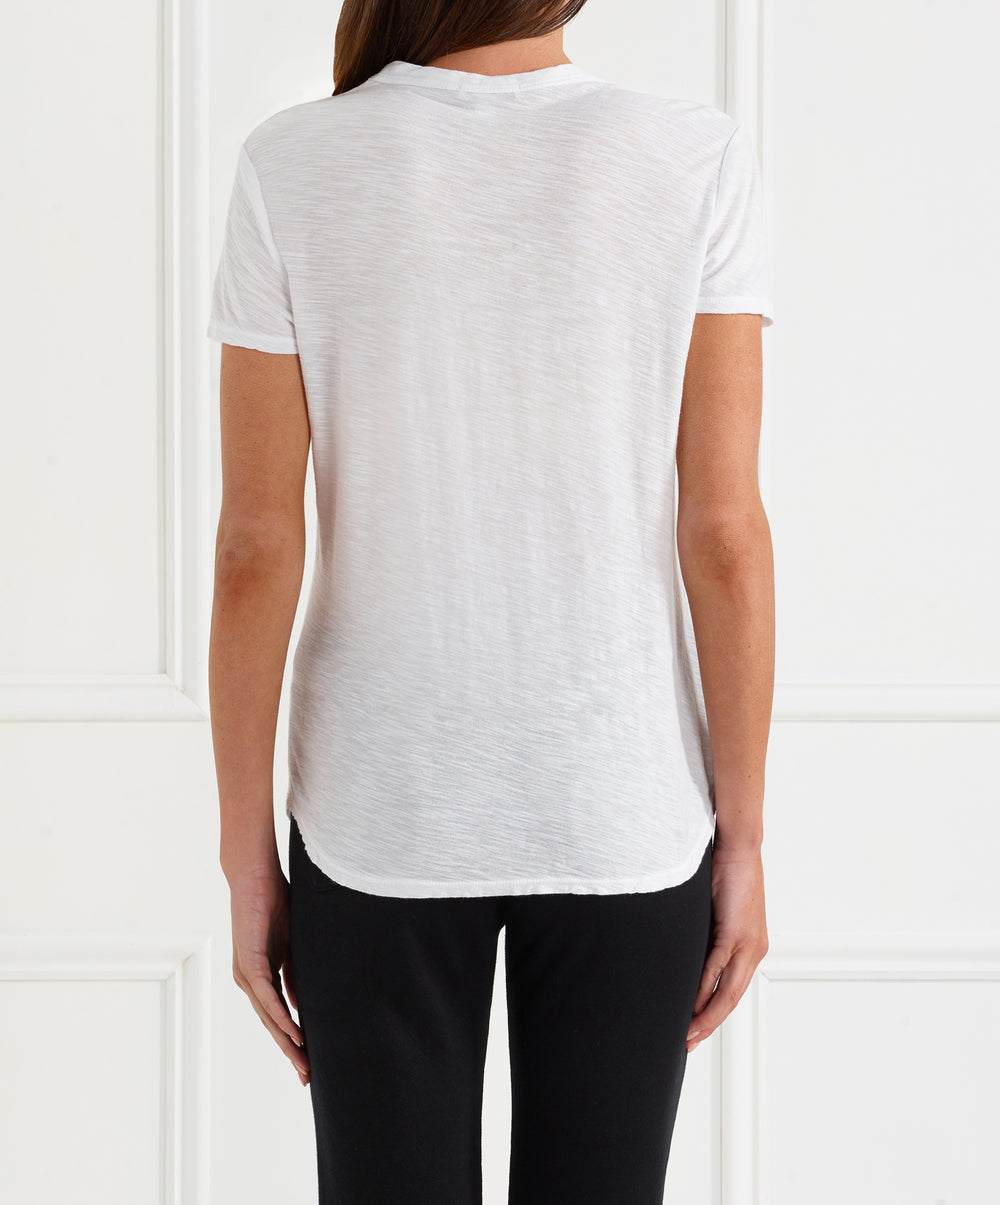 Sheer Slub Crew Neck Tee